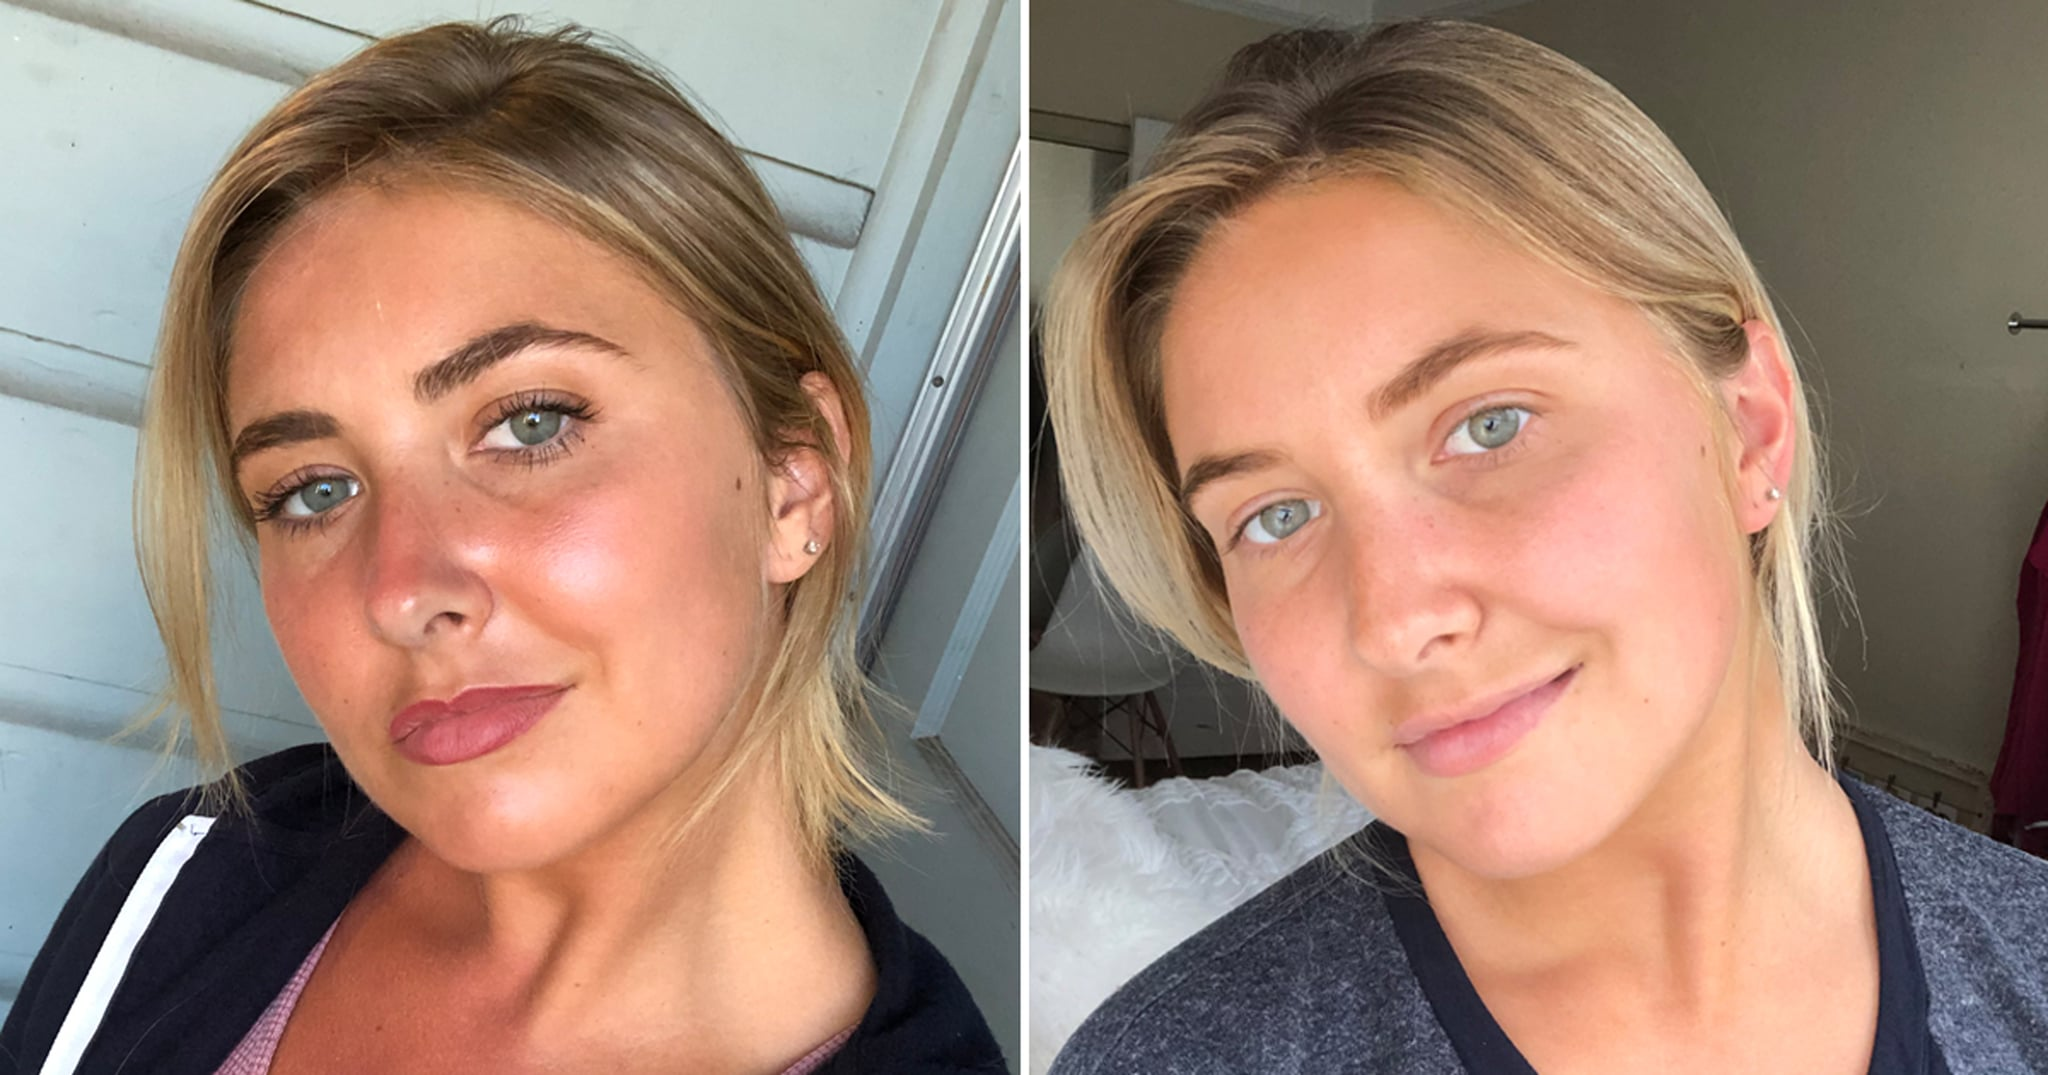 I've Skipped Makeup Almost Every Day While Self-Isolating, and It's Changed My Point of View